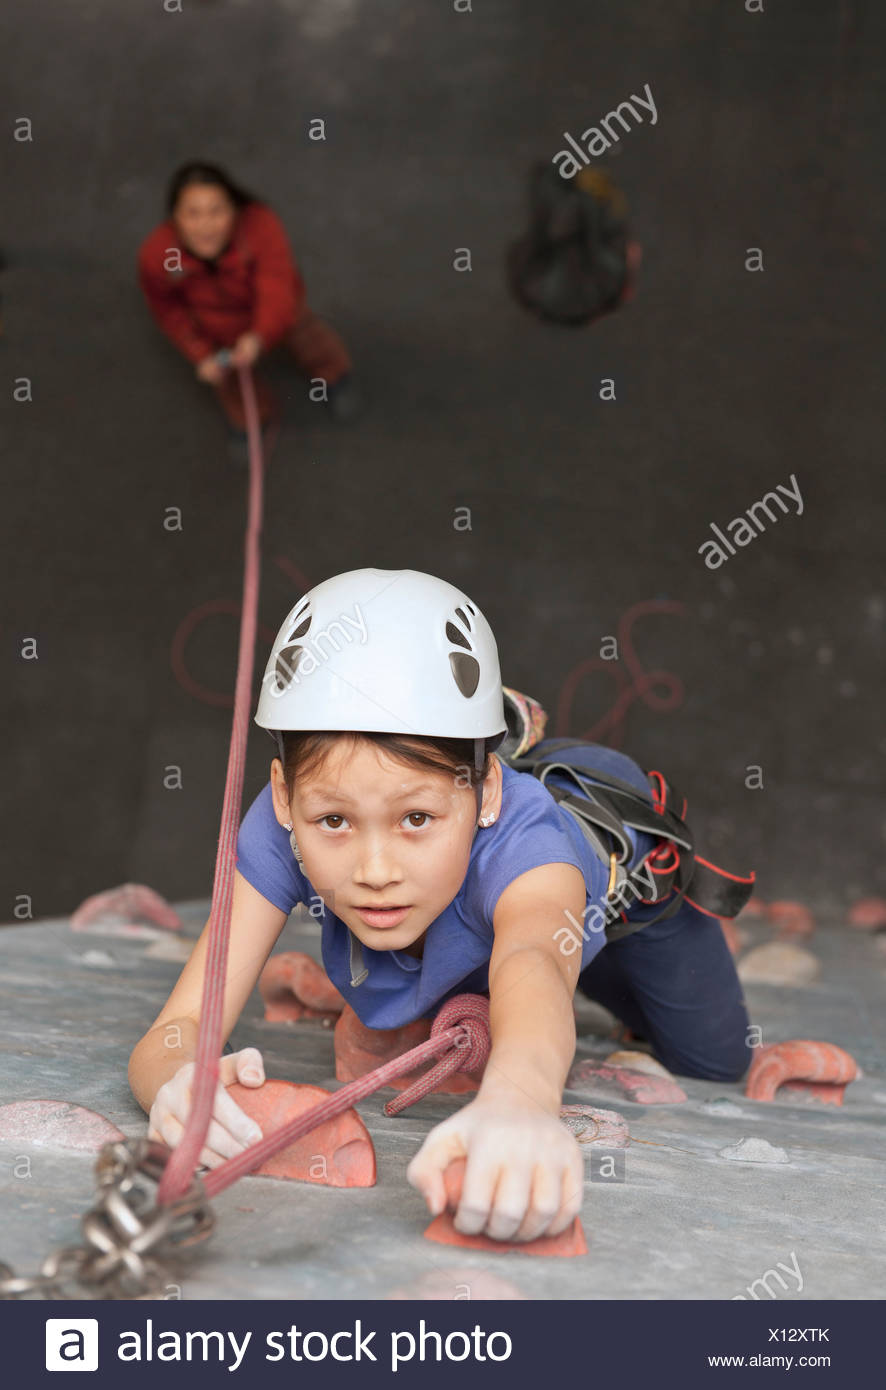 Girl climbing indoor rock wall - Stock Image